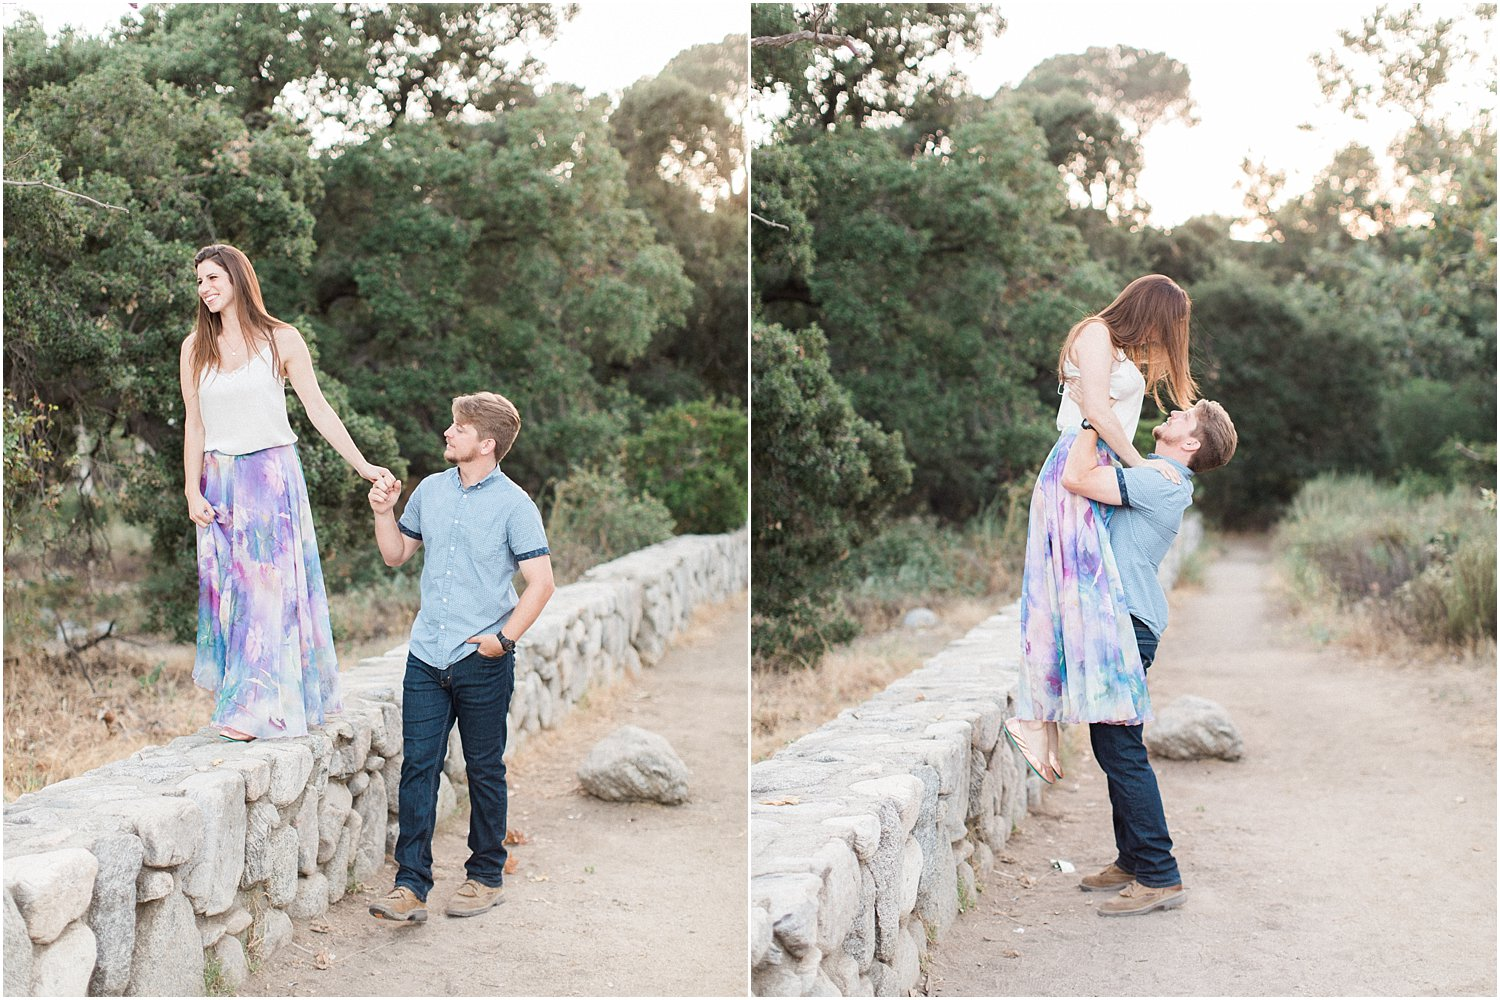 Pasadena_California_Engagement_Photographer_119.jpg